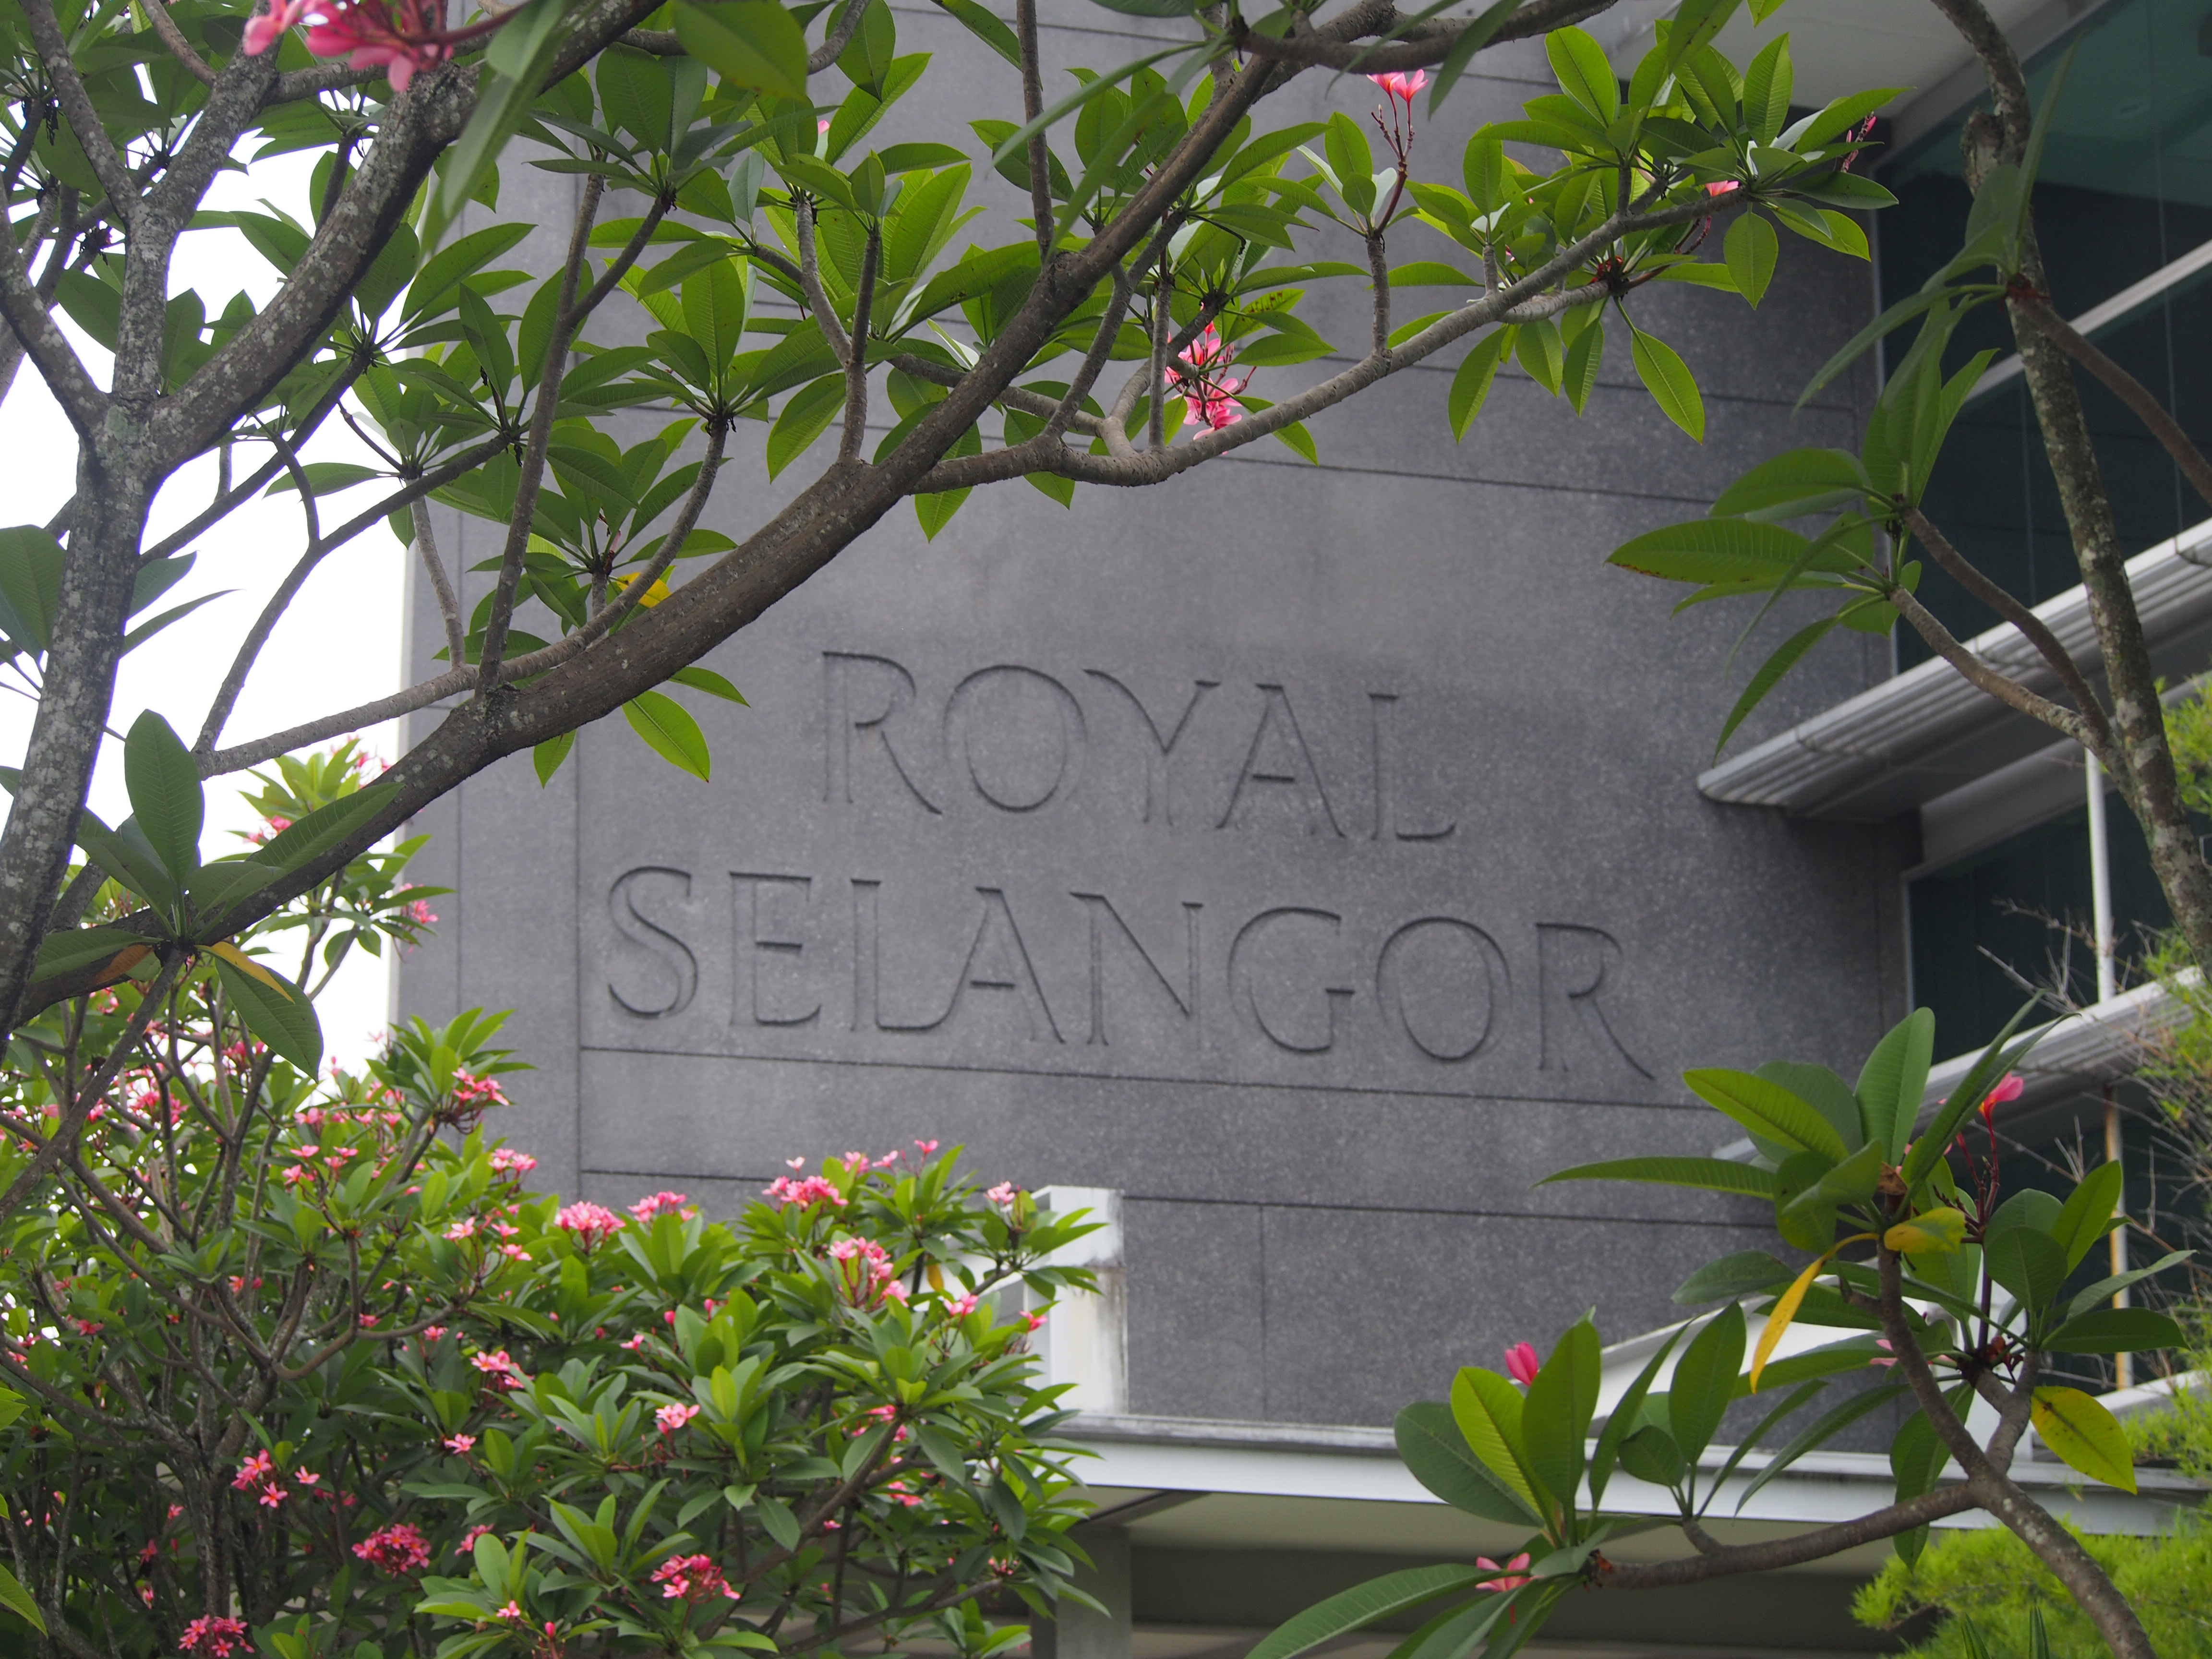 11 Fun And Awesome Things To Do At Royal Selangor's Visitor